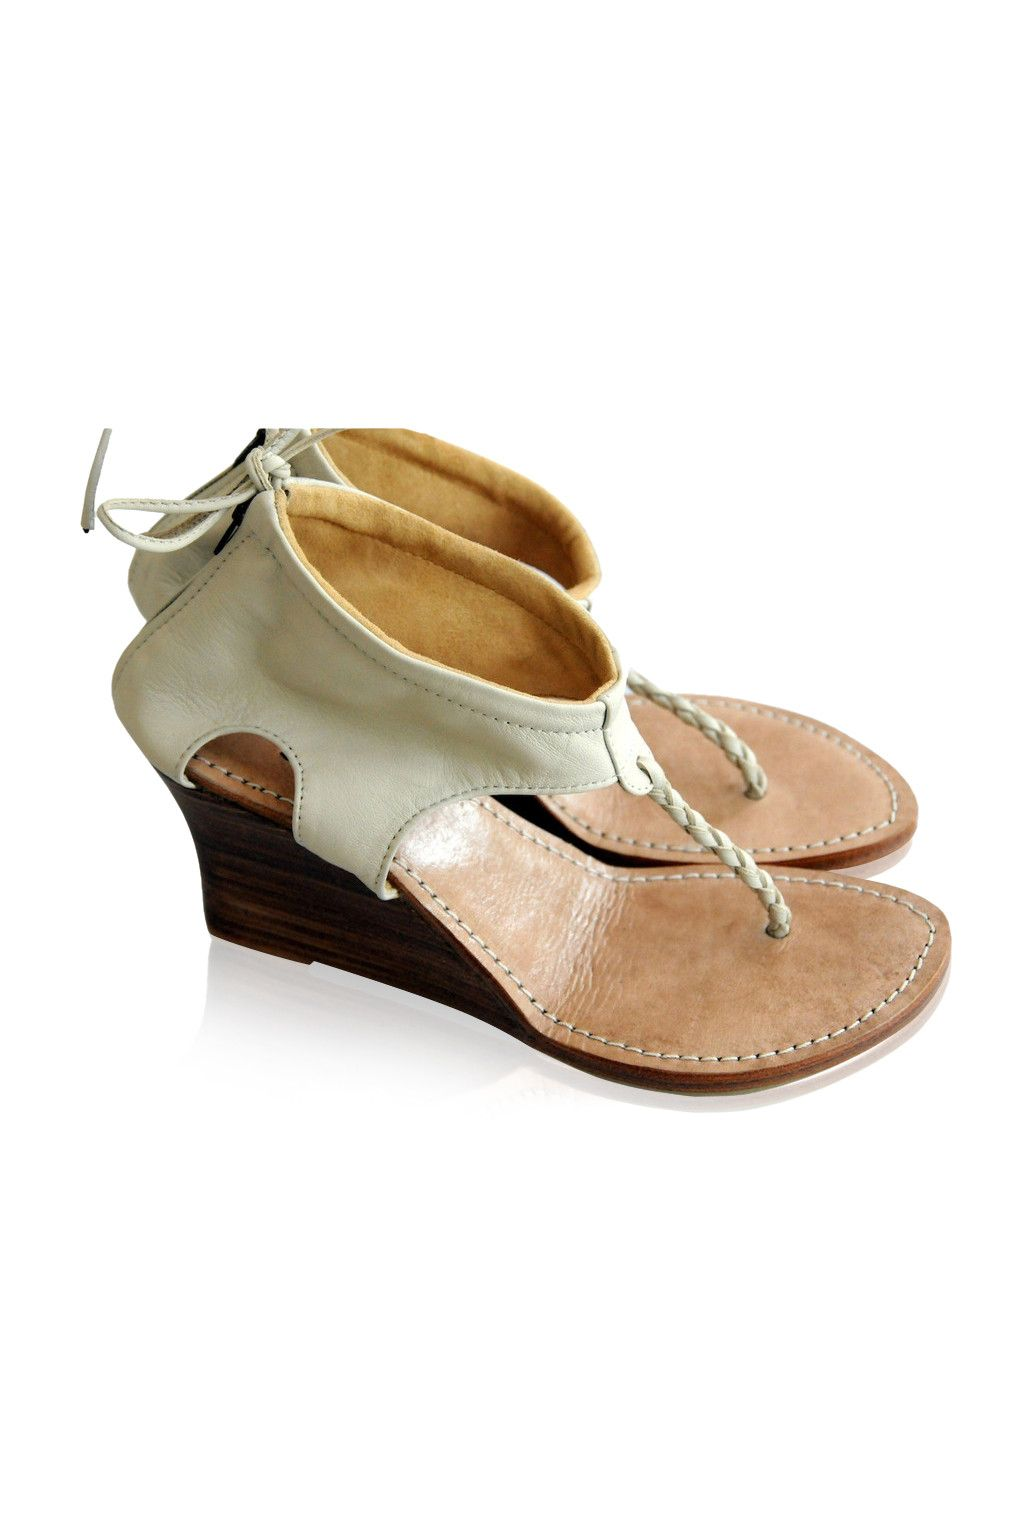 Aphrodite wedge sandals bare foot sandals wedding shoes